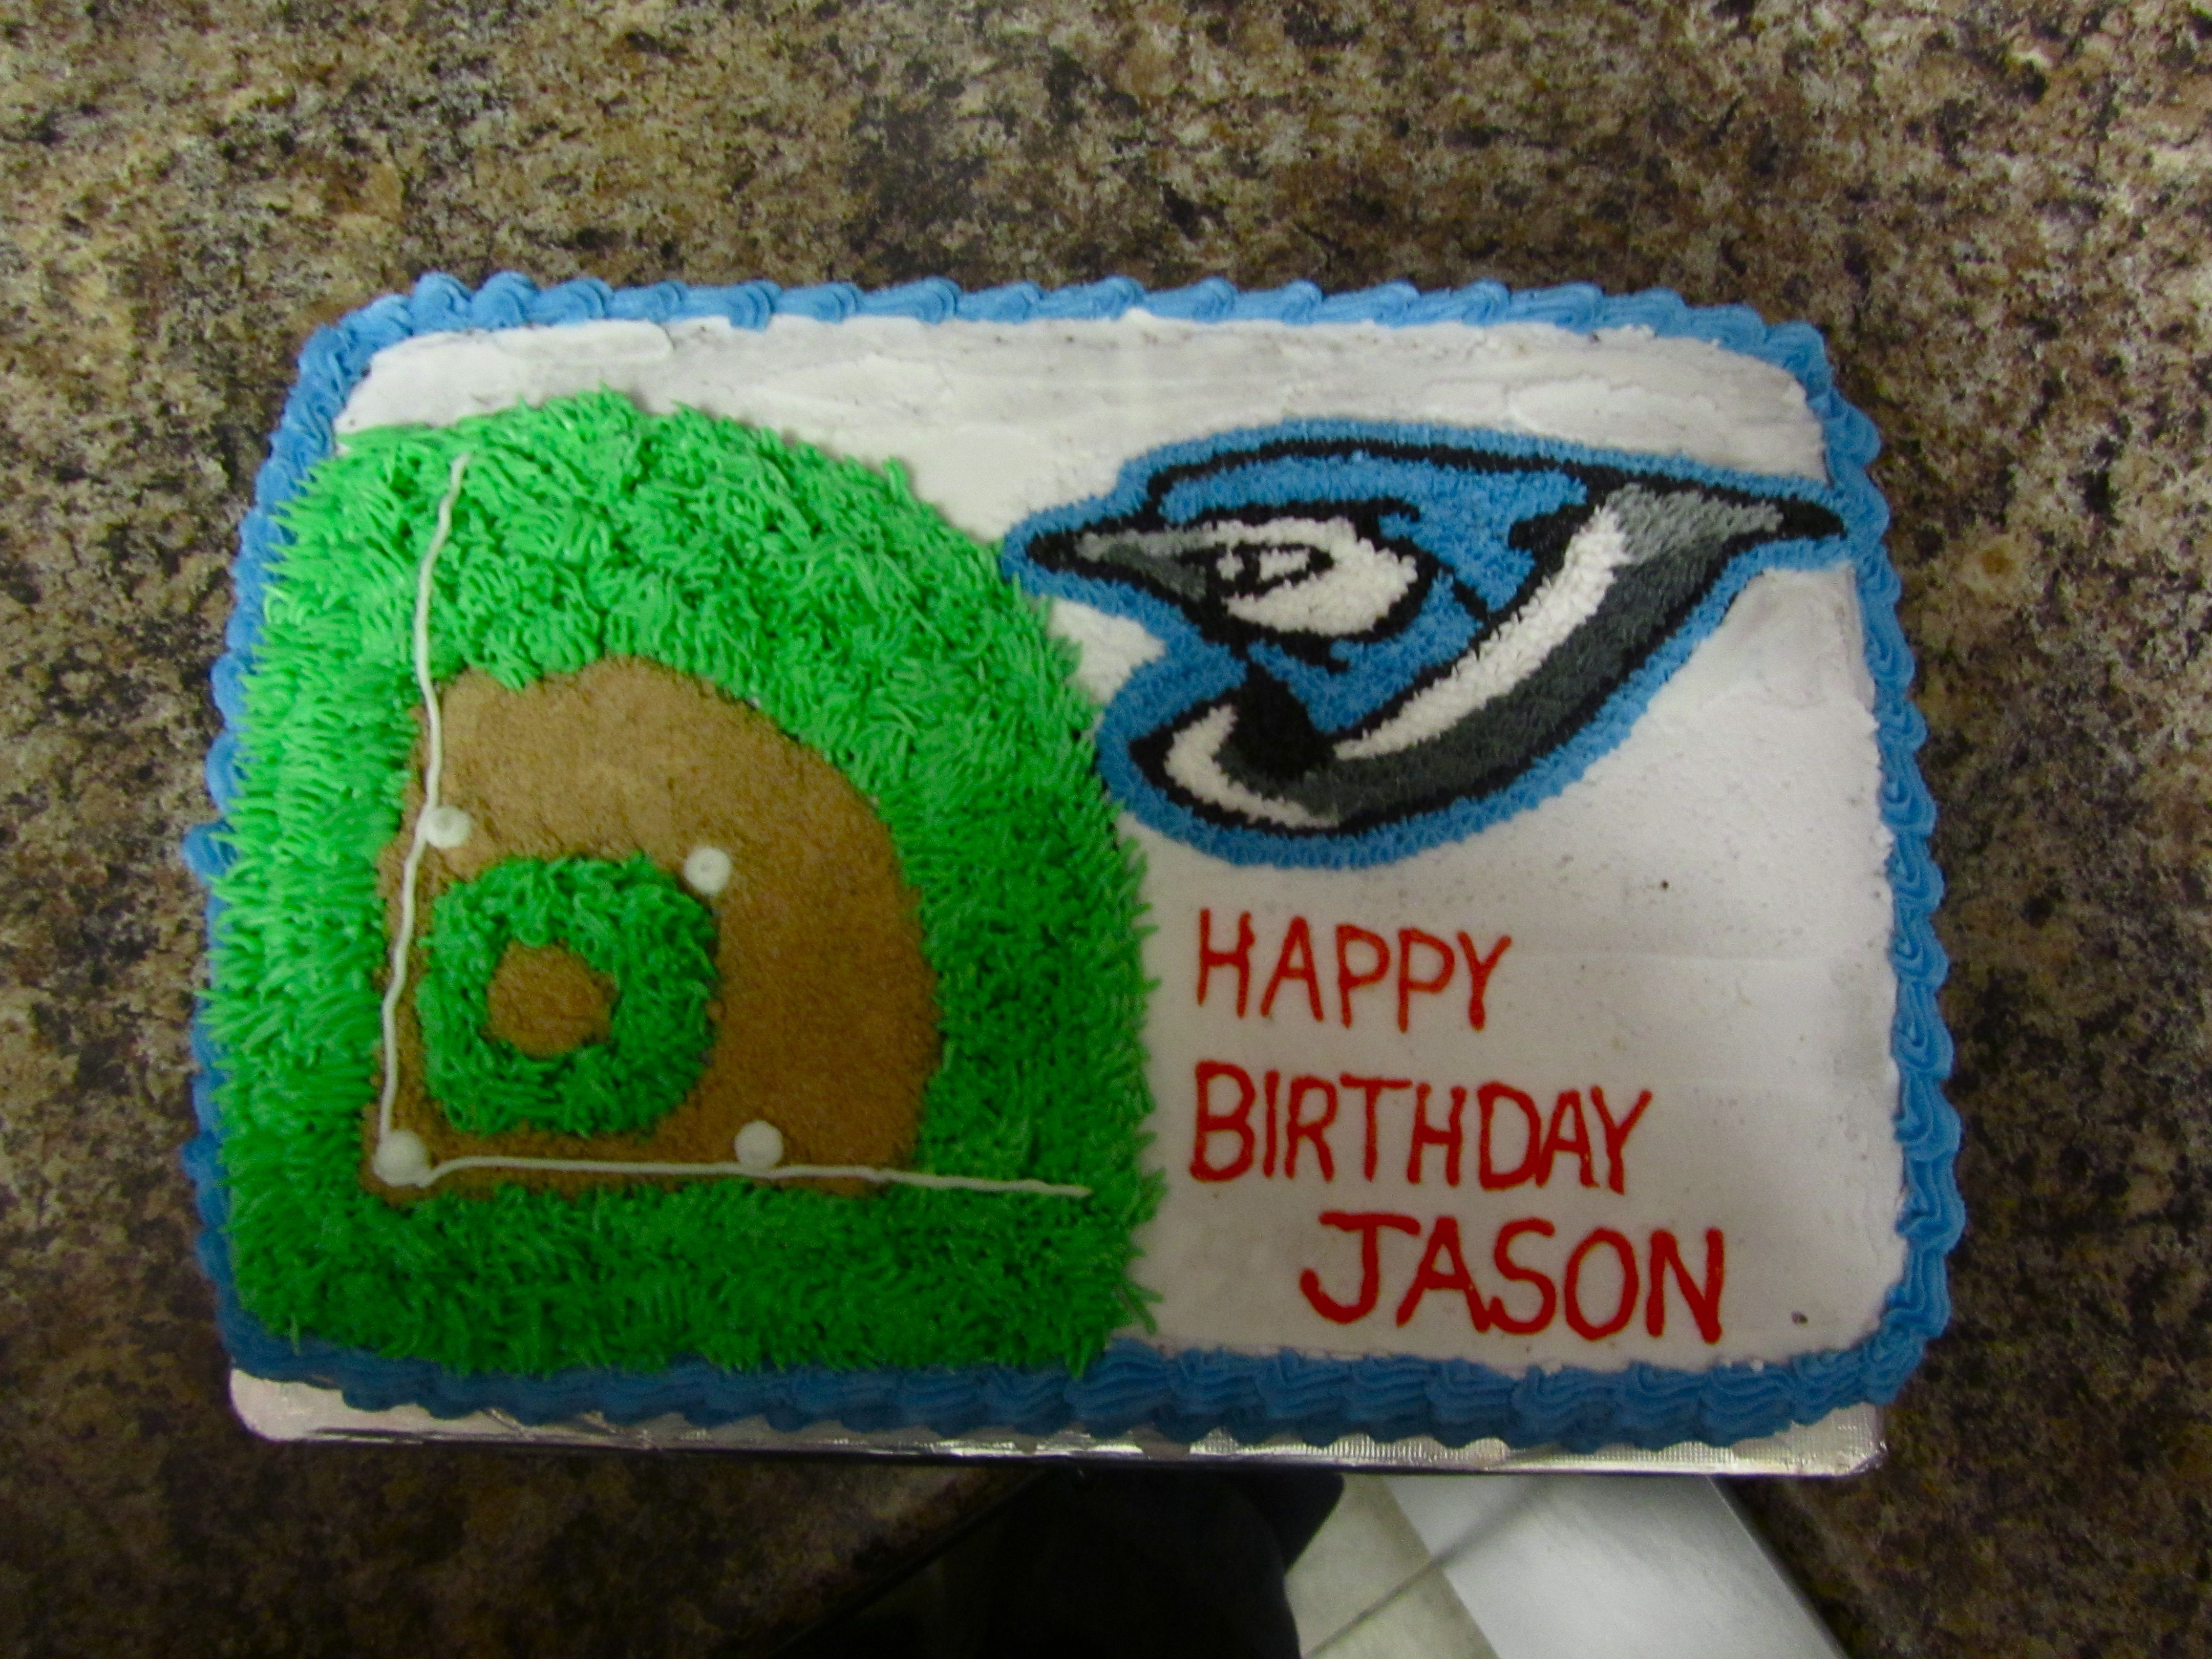 Blue Jays Cake Images : Toronto Blue Jays Cake Cake Recipes & Cake Decorating ...